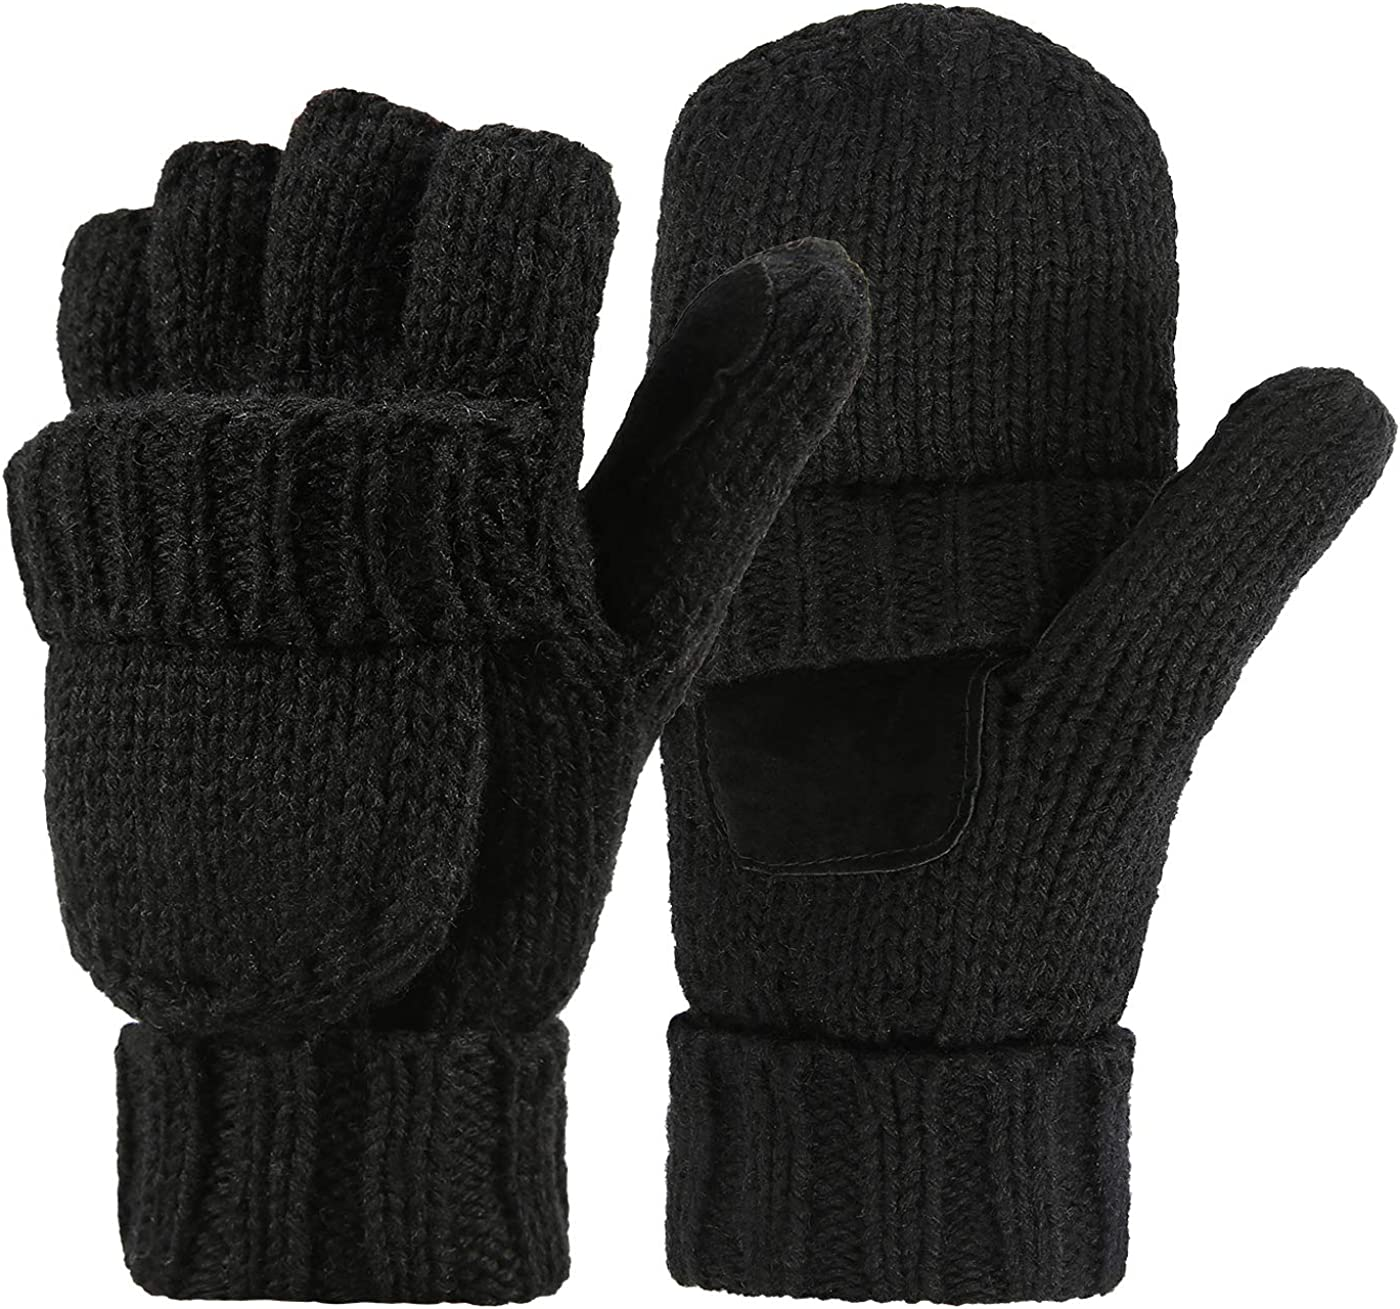 HDE Womens Winter Wool Fingerless Mittens | Warm Convertible Gloves Mitten  Cover at Amazon Women's Clothing store